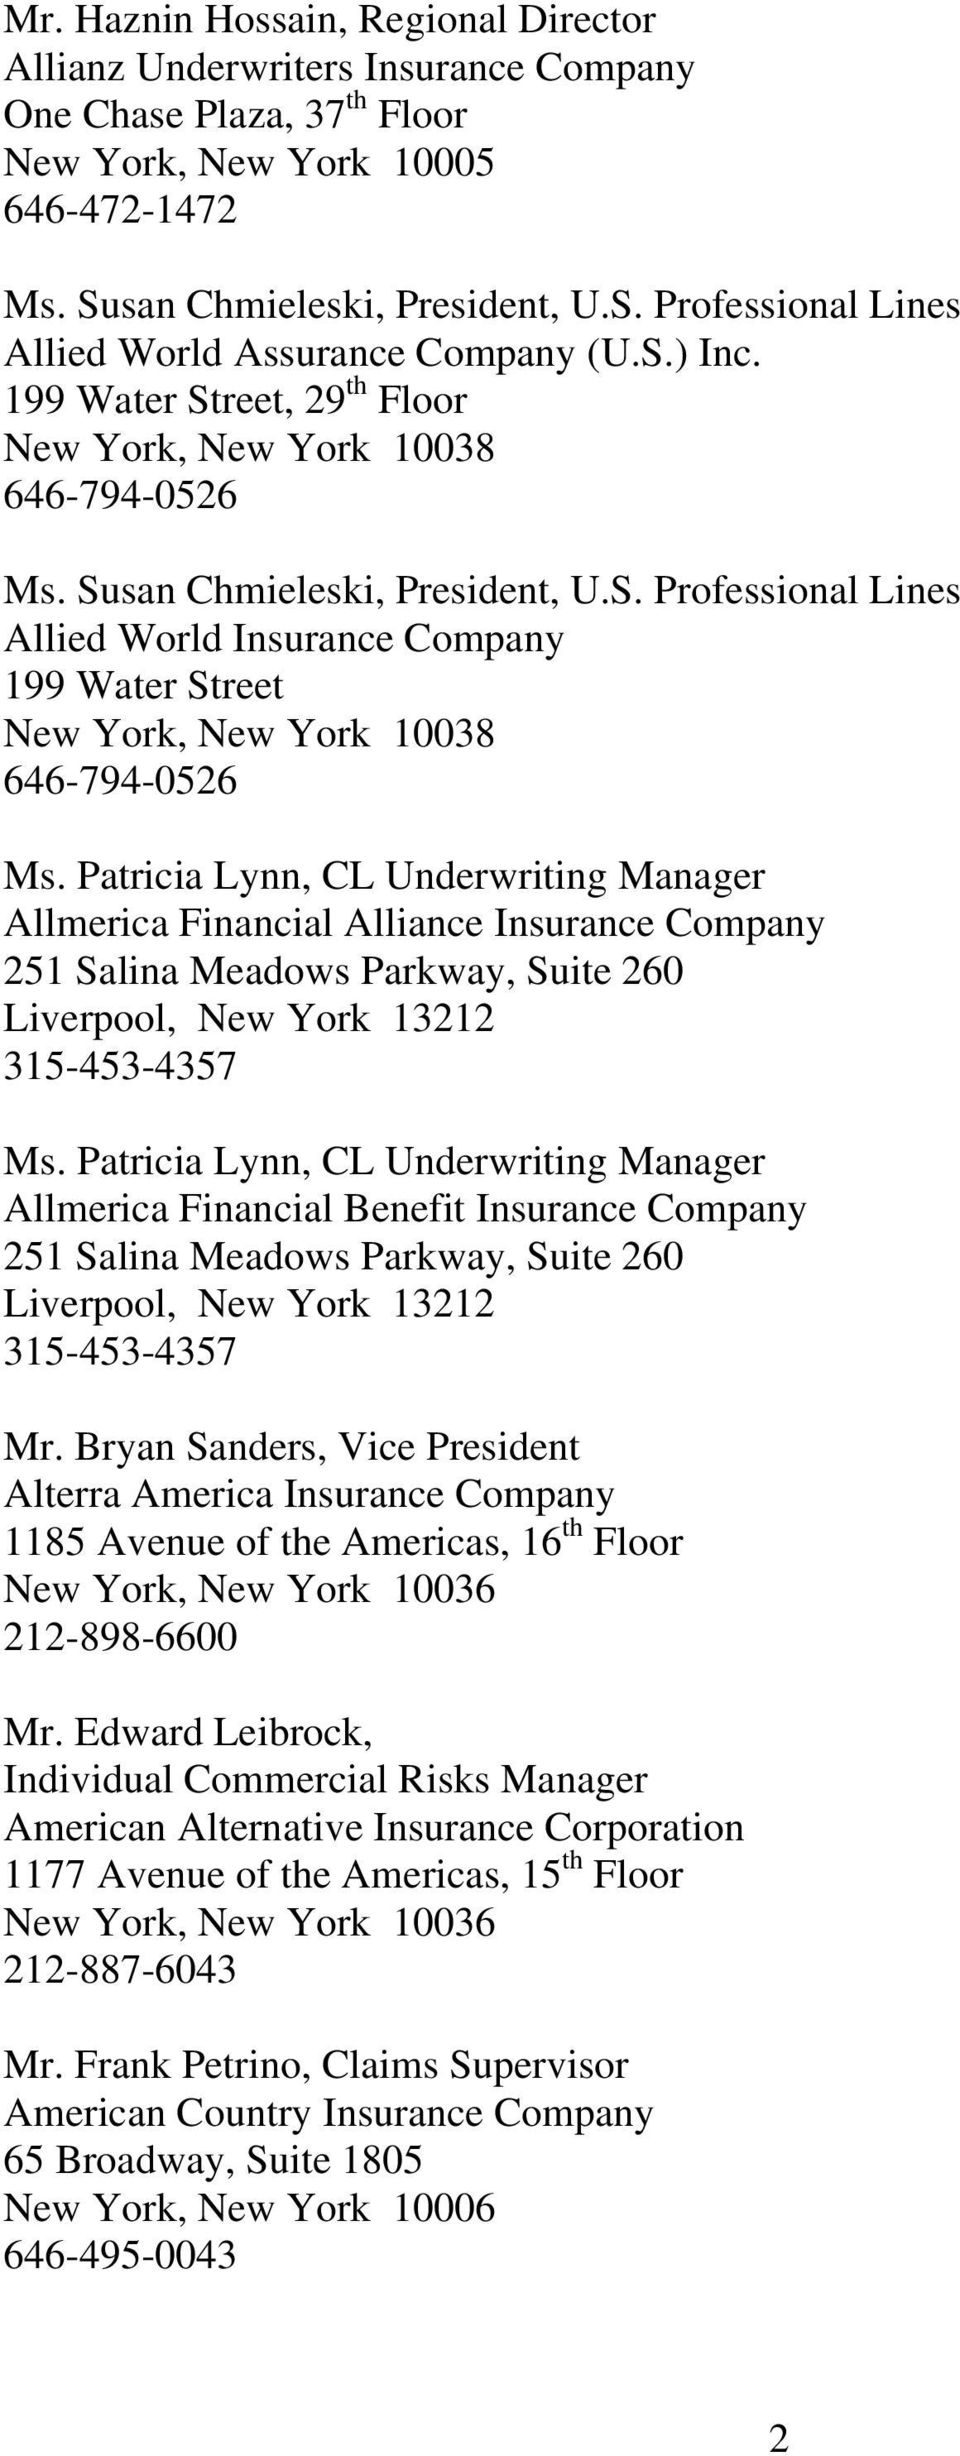 Patricia Lynn, CL Underwriting Manager Allmerica Financial Alliance Insurance Company 251 Salina Meadows Parkway, Suite 260 Liverpool, New York 13212 315-453-4357 Ms.